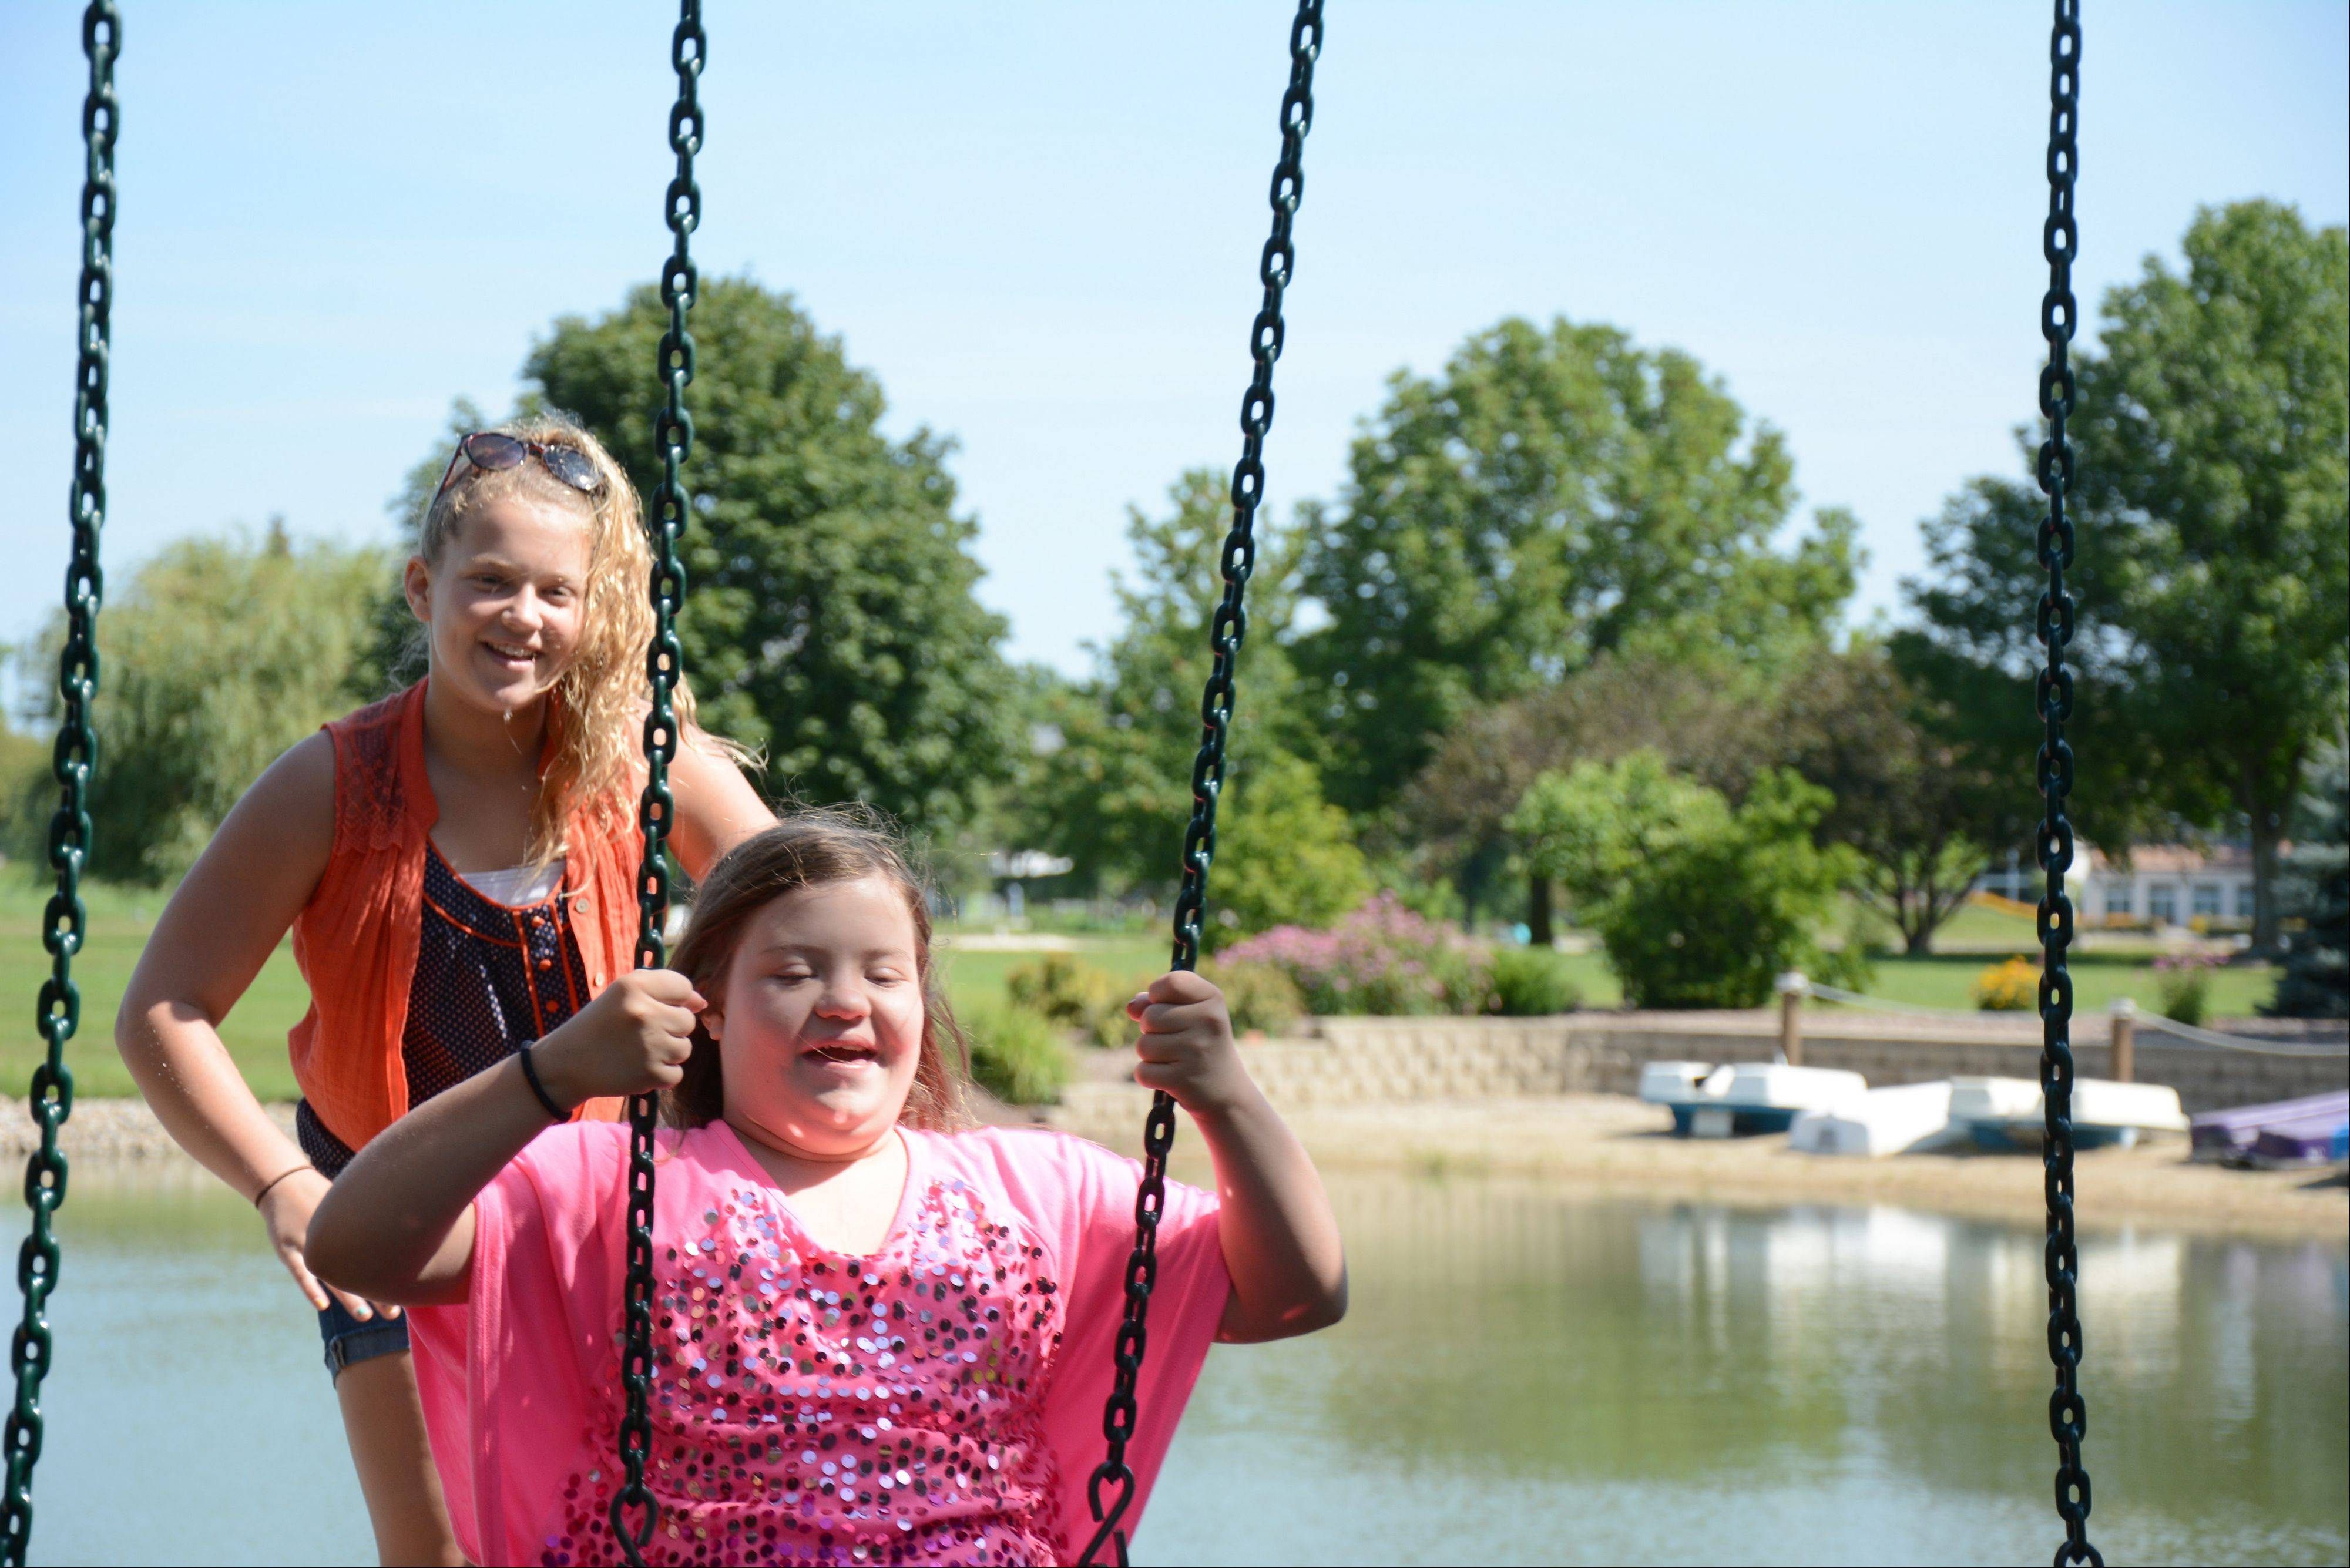 Bella Gianni, background, pushes her sister GiGi on a swing at a park near their home in South Barrington.